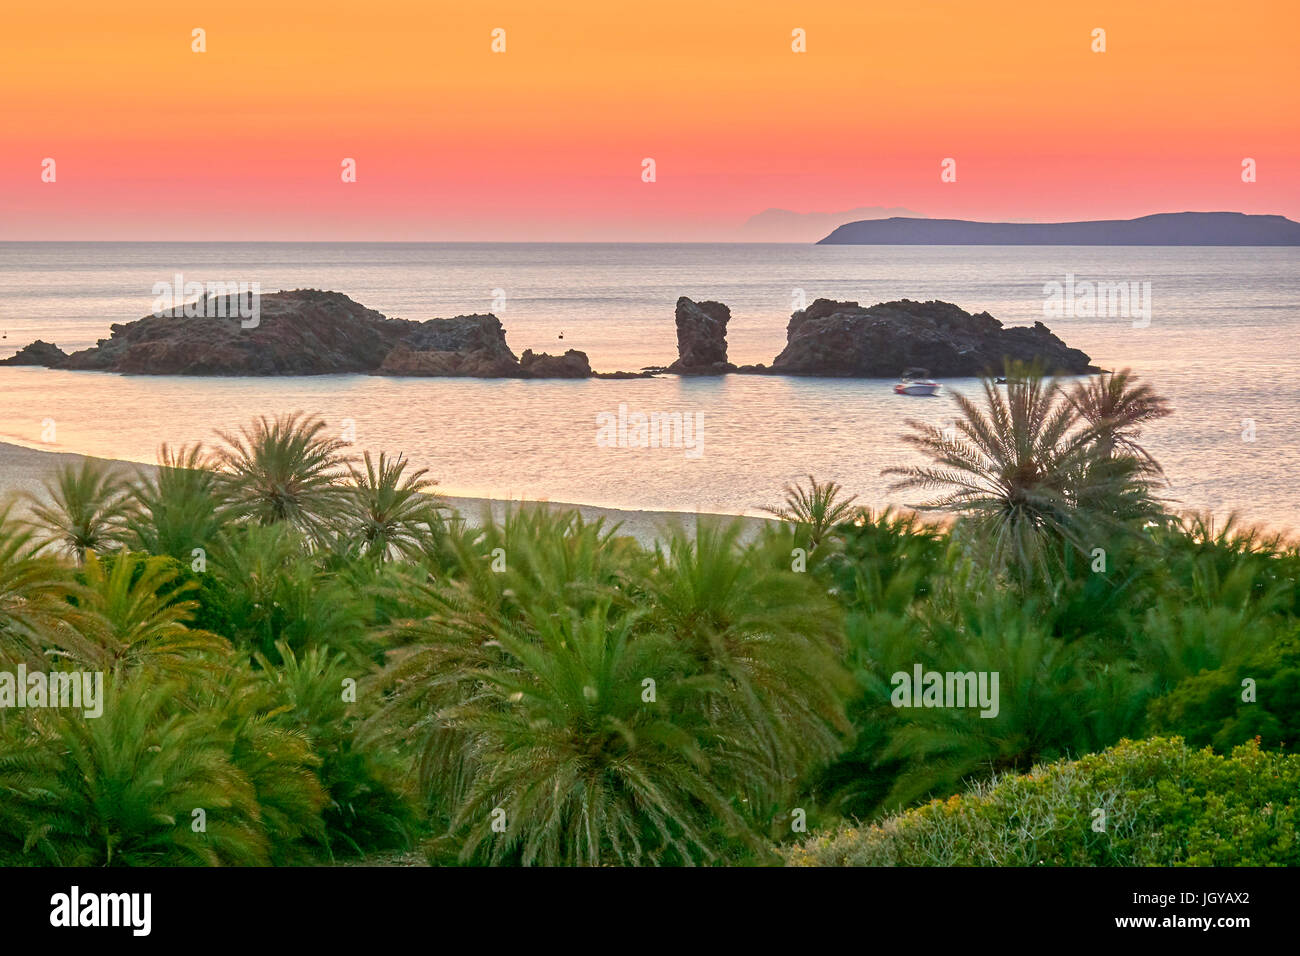 Dusk before sunrise at Vai Beach, Crete Island, Greece - Stock Image